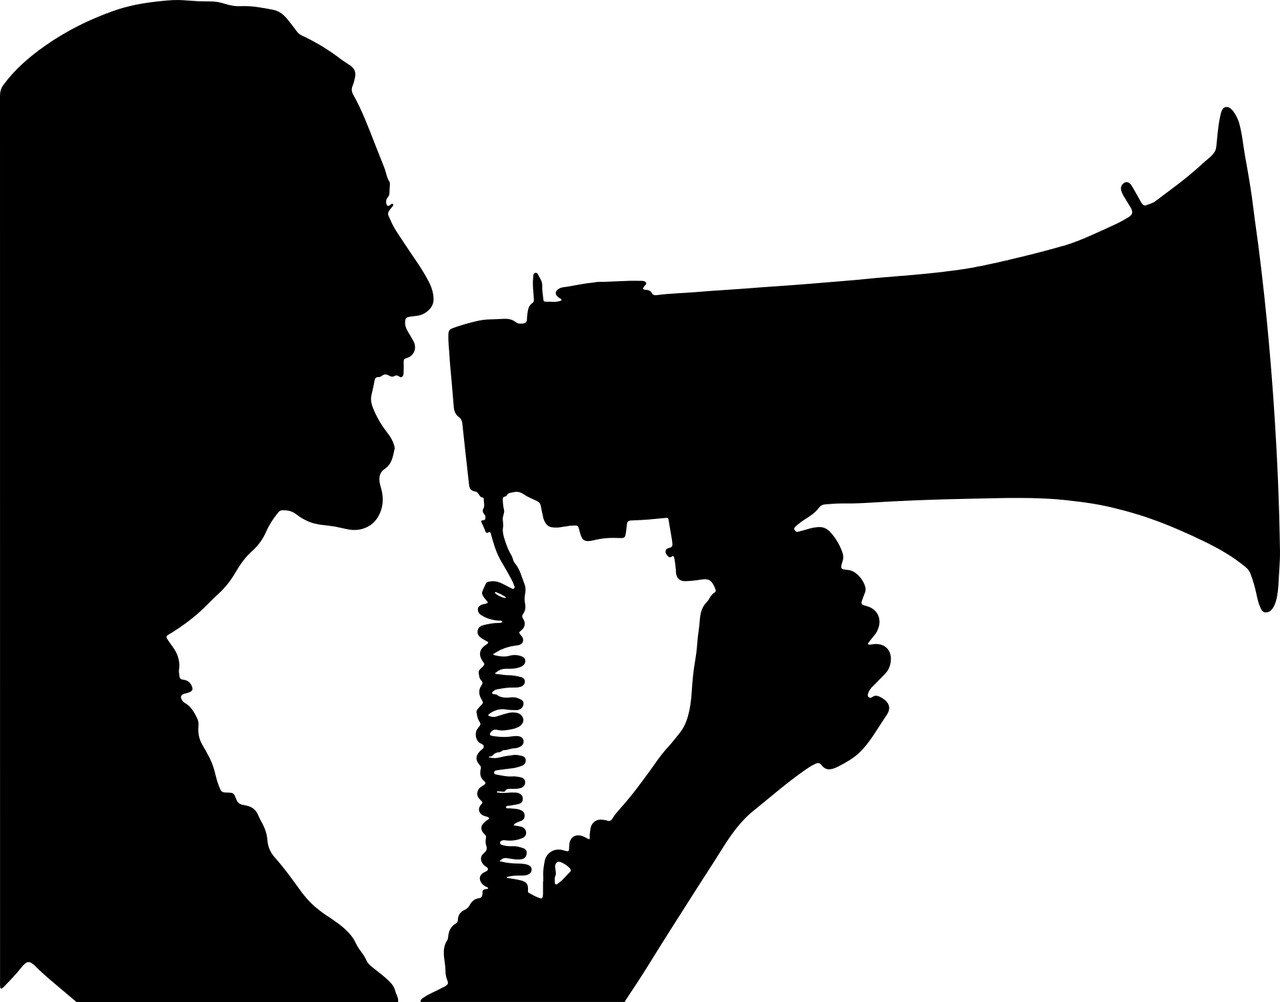 woman yelling into a bullhorn - illustration